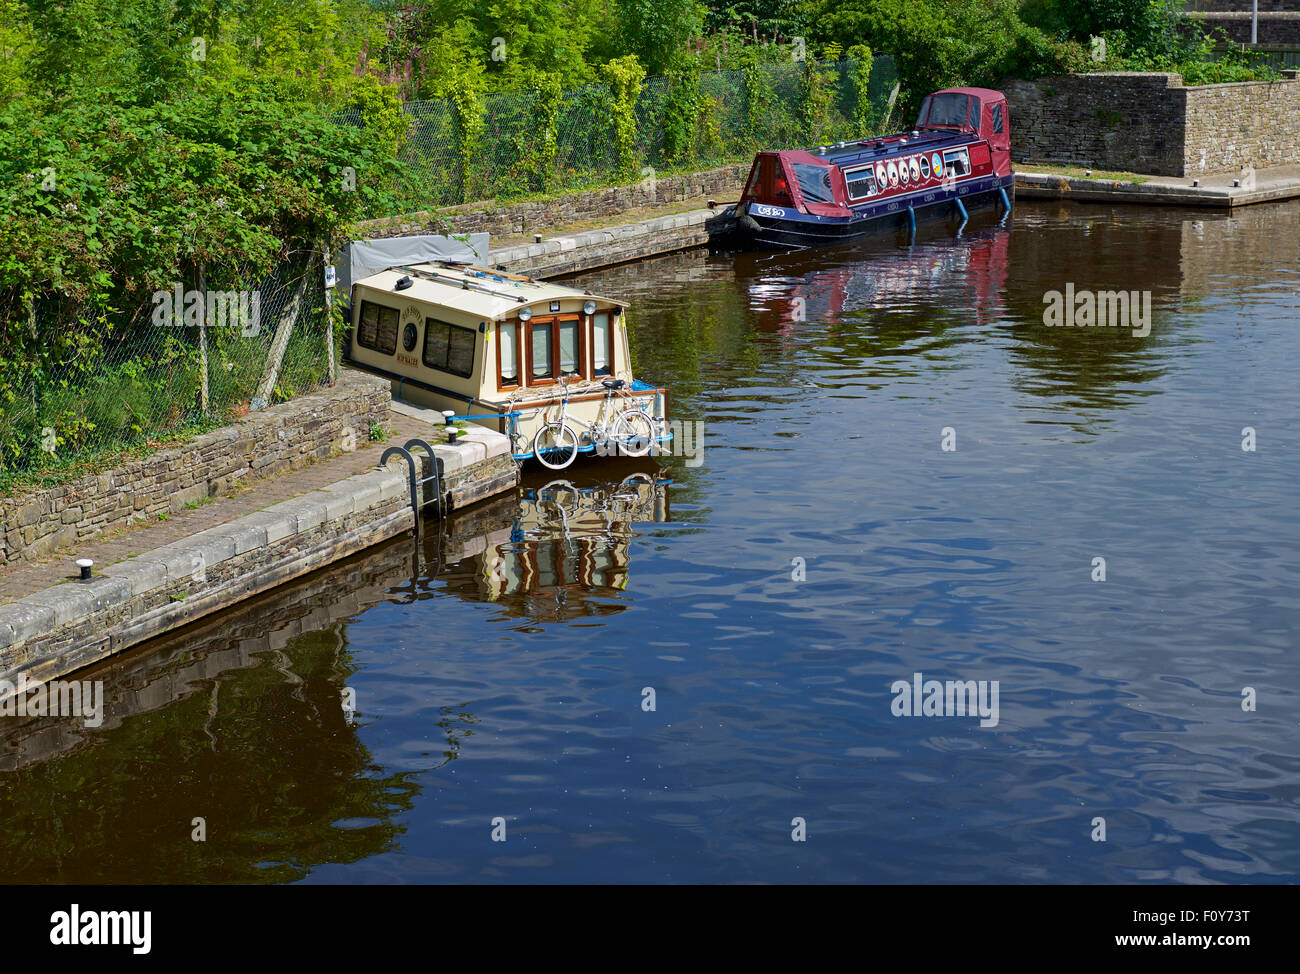 Two narrowboats on the Brecon and Monmouthshire Canal, Powys, Wales UK - Stock Image